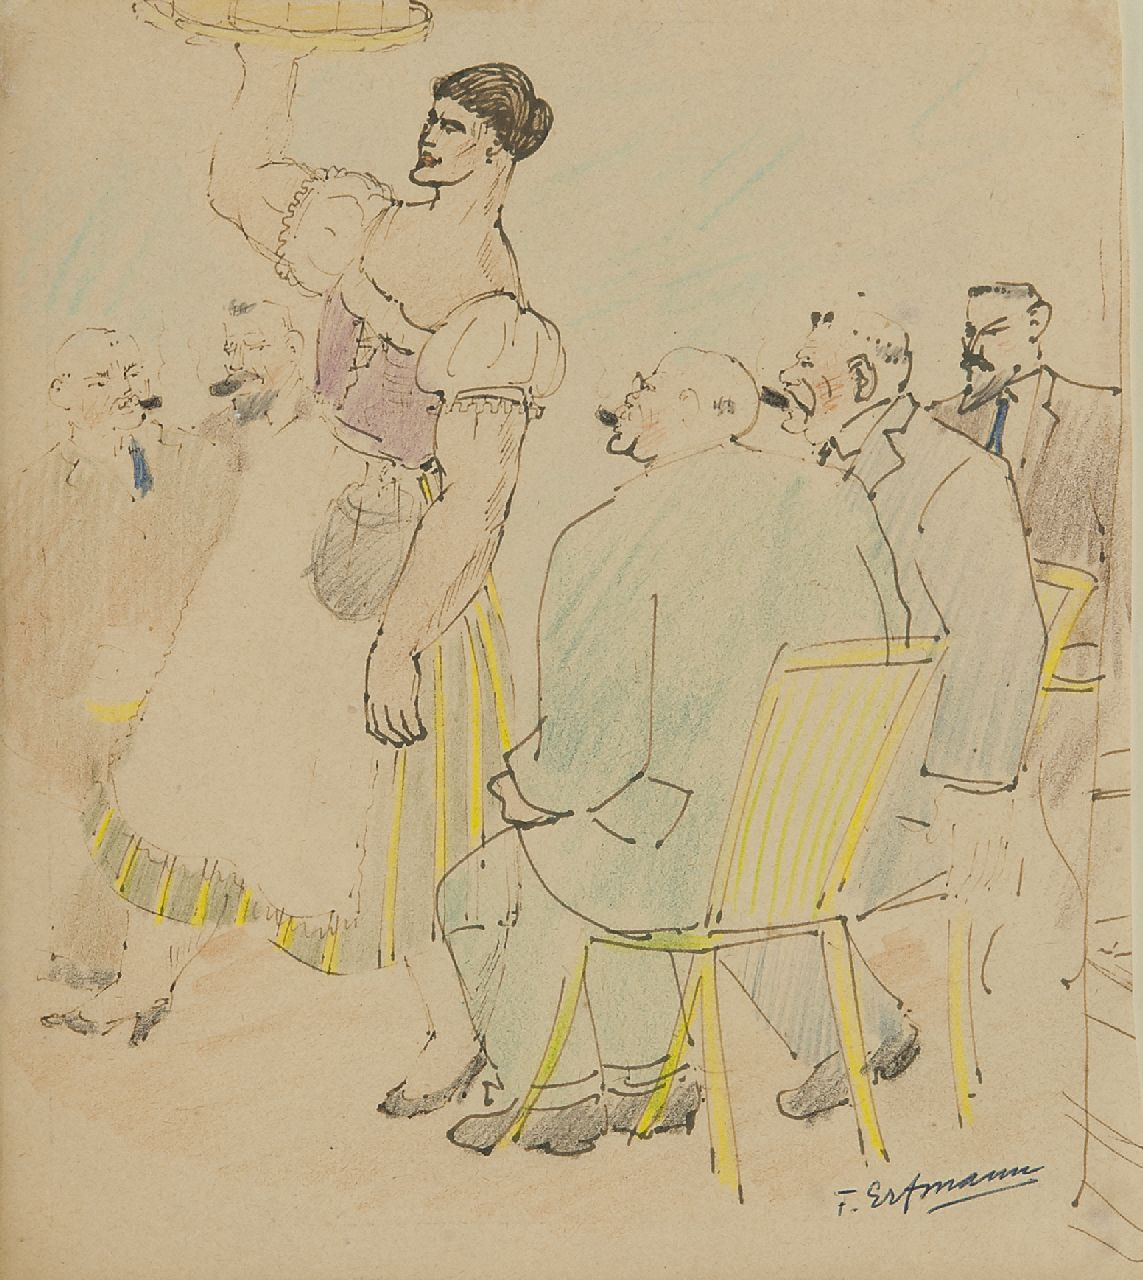 Erfmann F.G.  | 'Ferdinand' George Erfmann | Watercolours and drawings offered for sale | The German waitress, pen, ink and pencil on paper 21.0 x 18.9 cm, signed l.r.